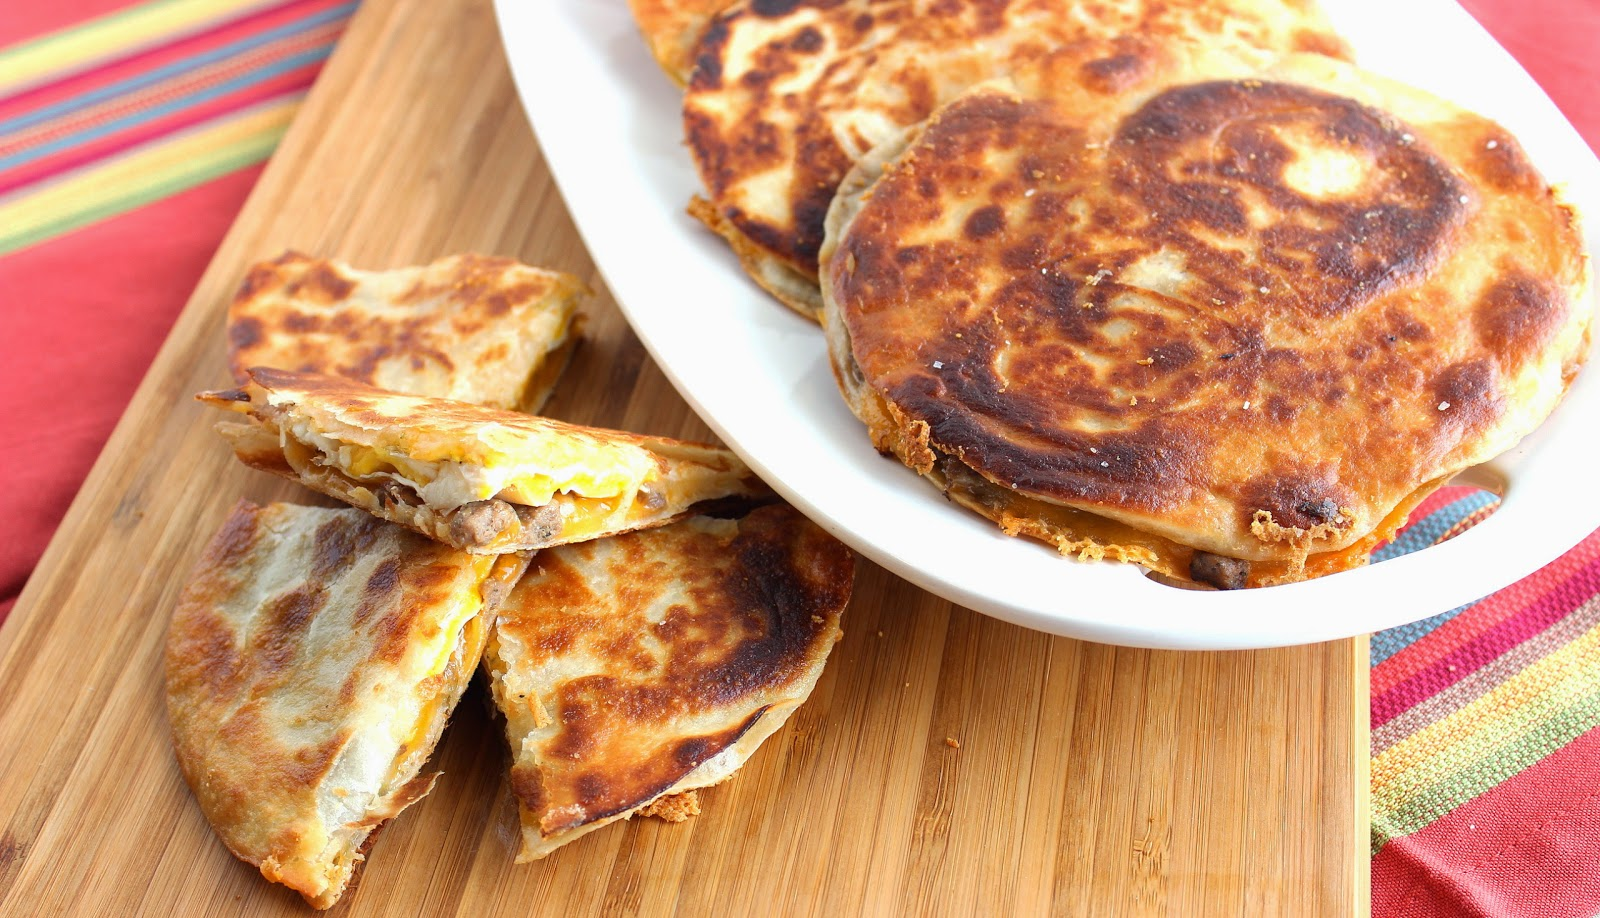 Sausage and Egg Quesadilla Recipe